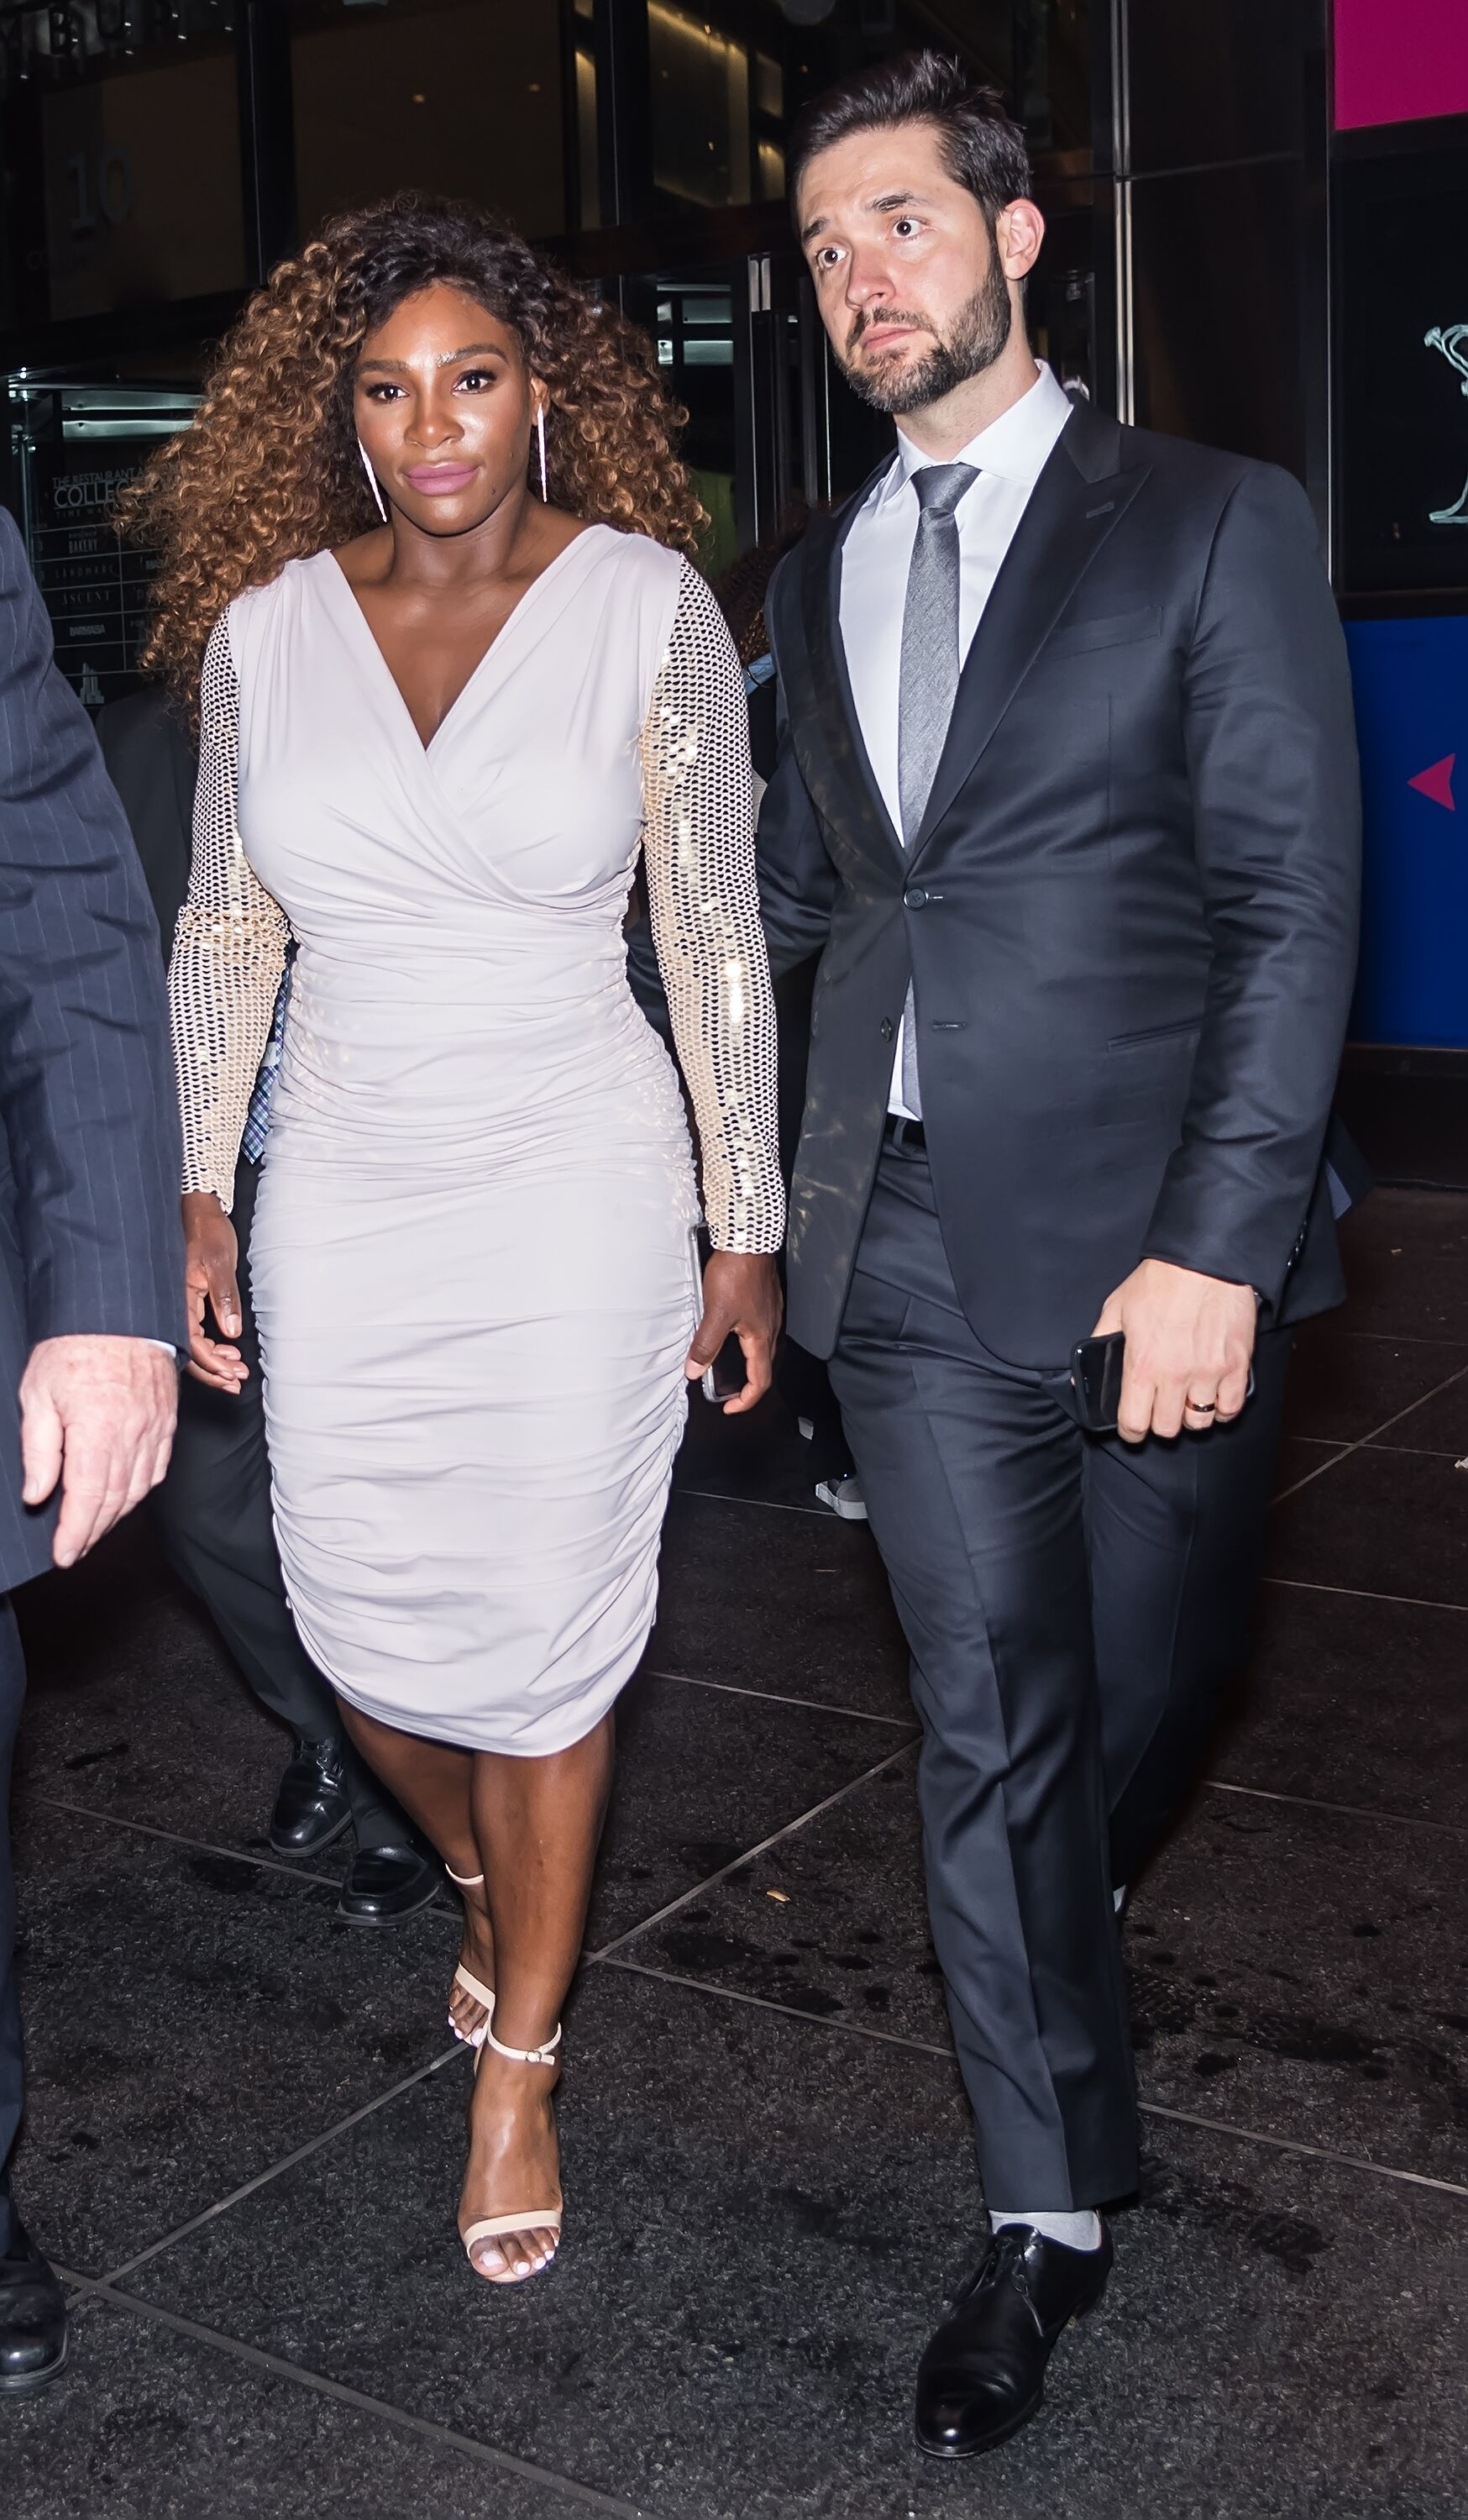 Serena Williams and Co-Founder of Reddit Alexis Ohanian are seen leaving the HBO documentary series premiere of 'Being Serena' at Time Warner Center on April 25, 2018 in New York City. | Source: Getty Images